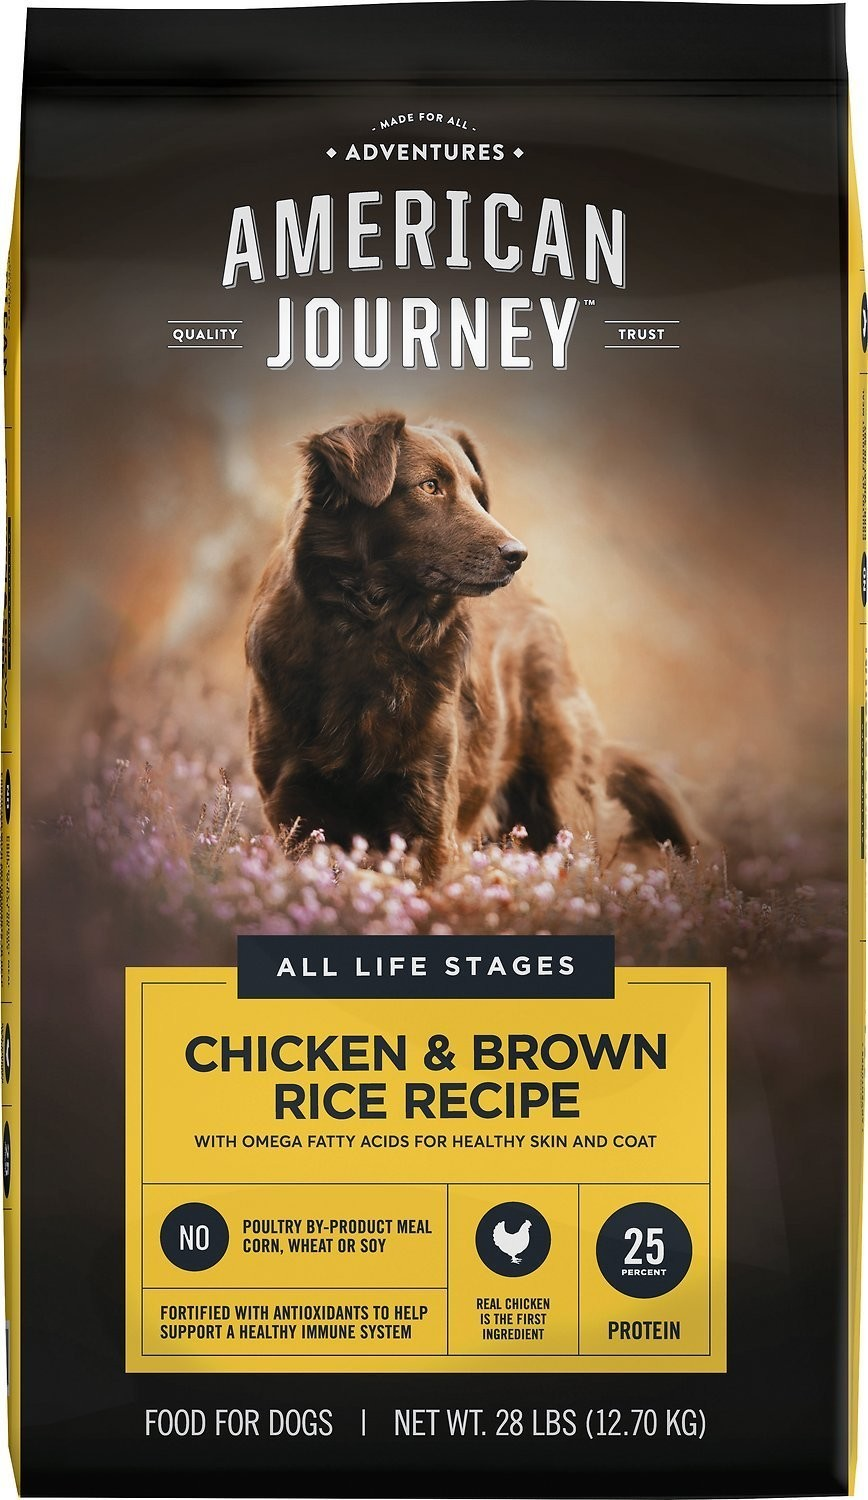 28 lbs (x2) American Journey Dog Food + 1 lb. Free treats w/ 50% off first bag $34